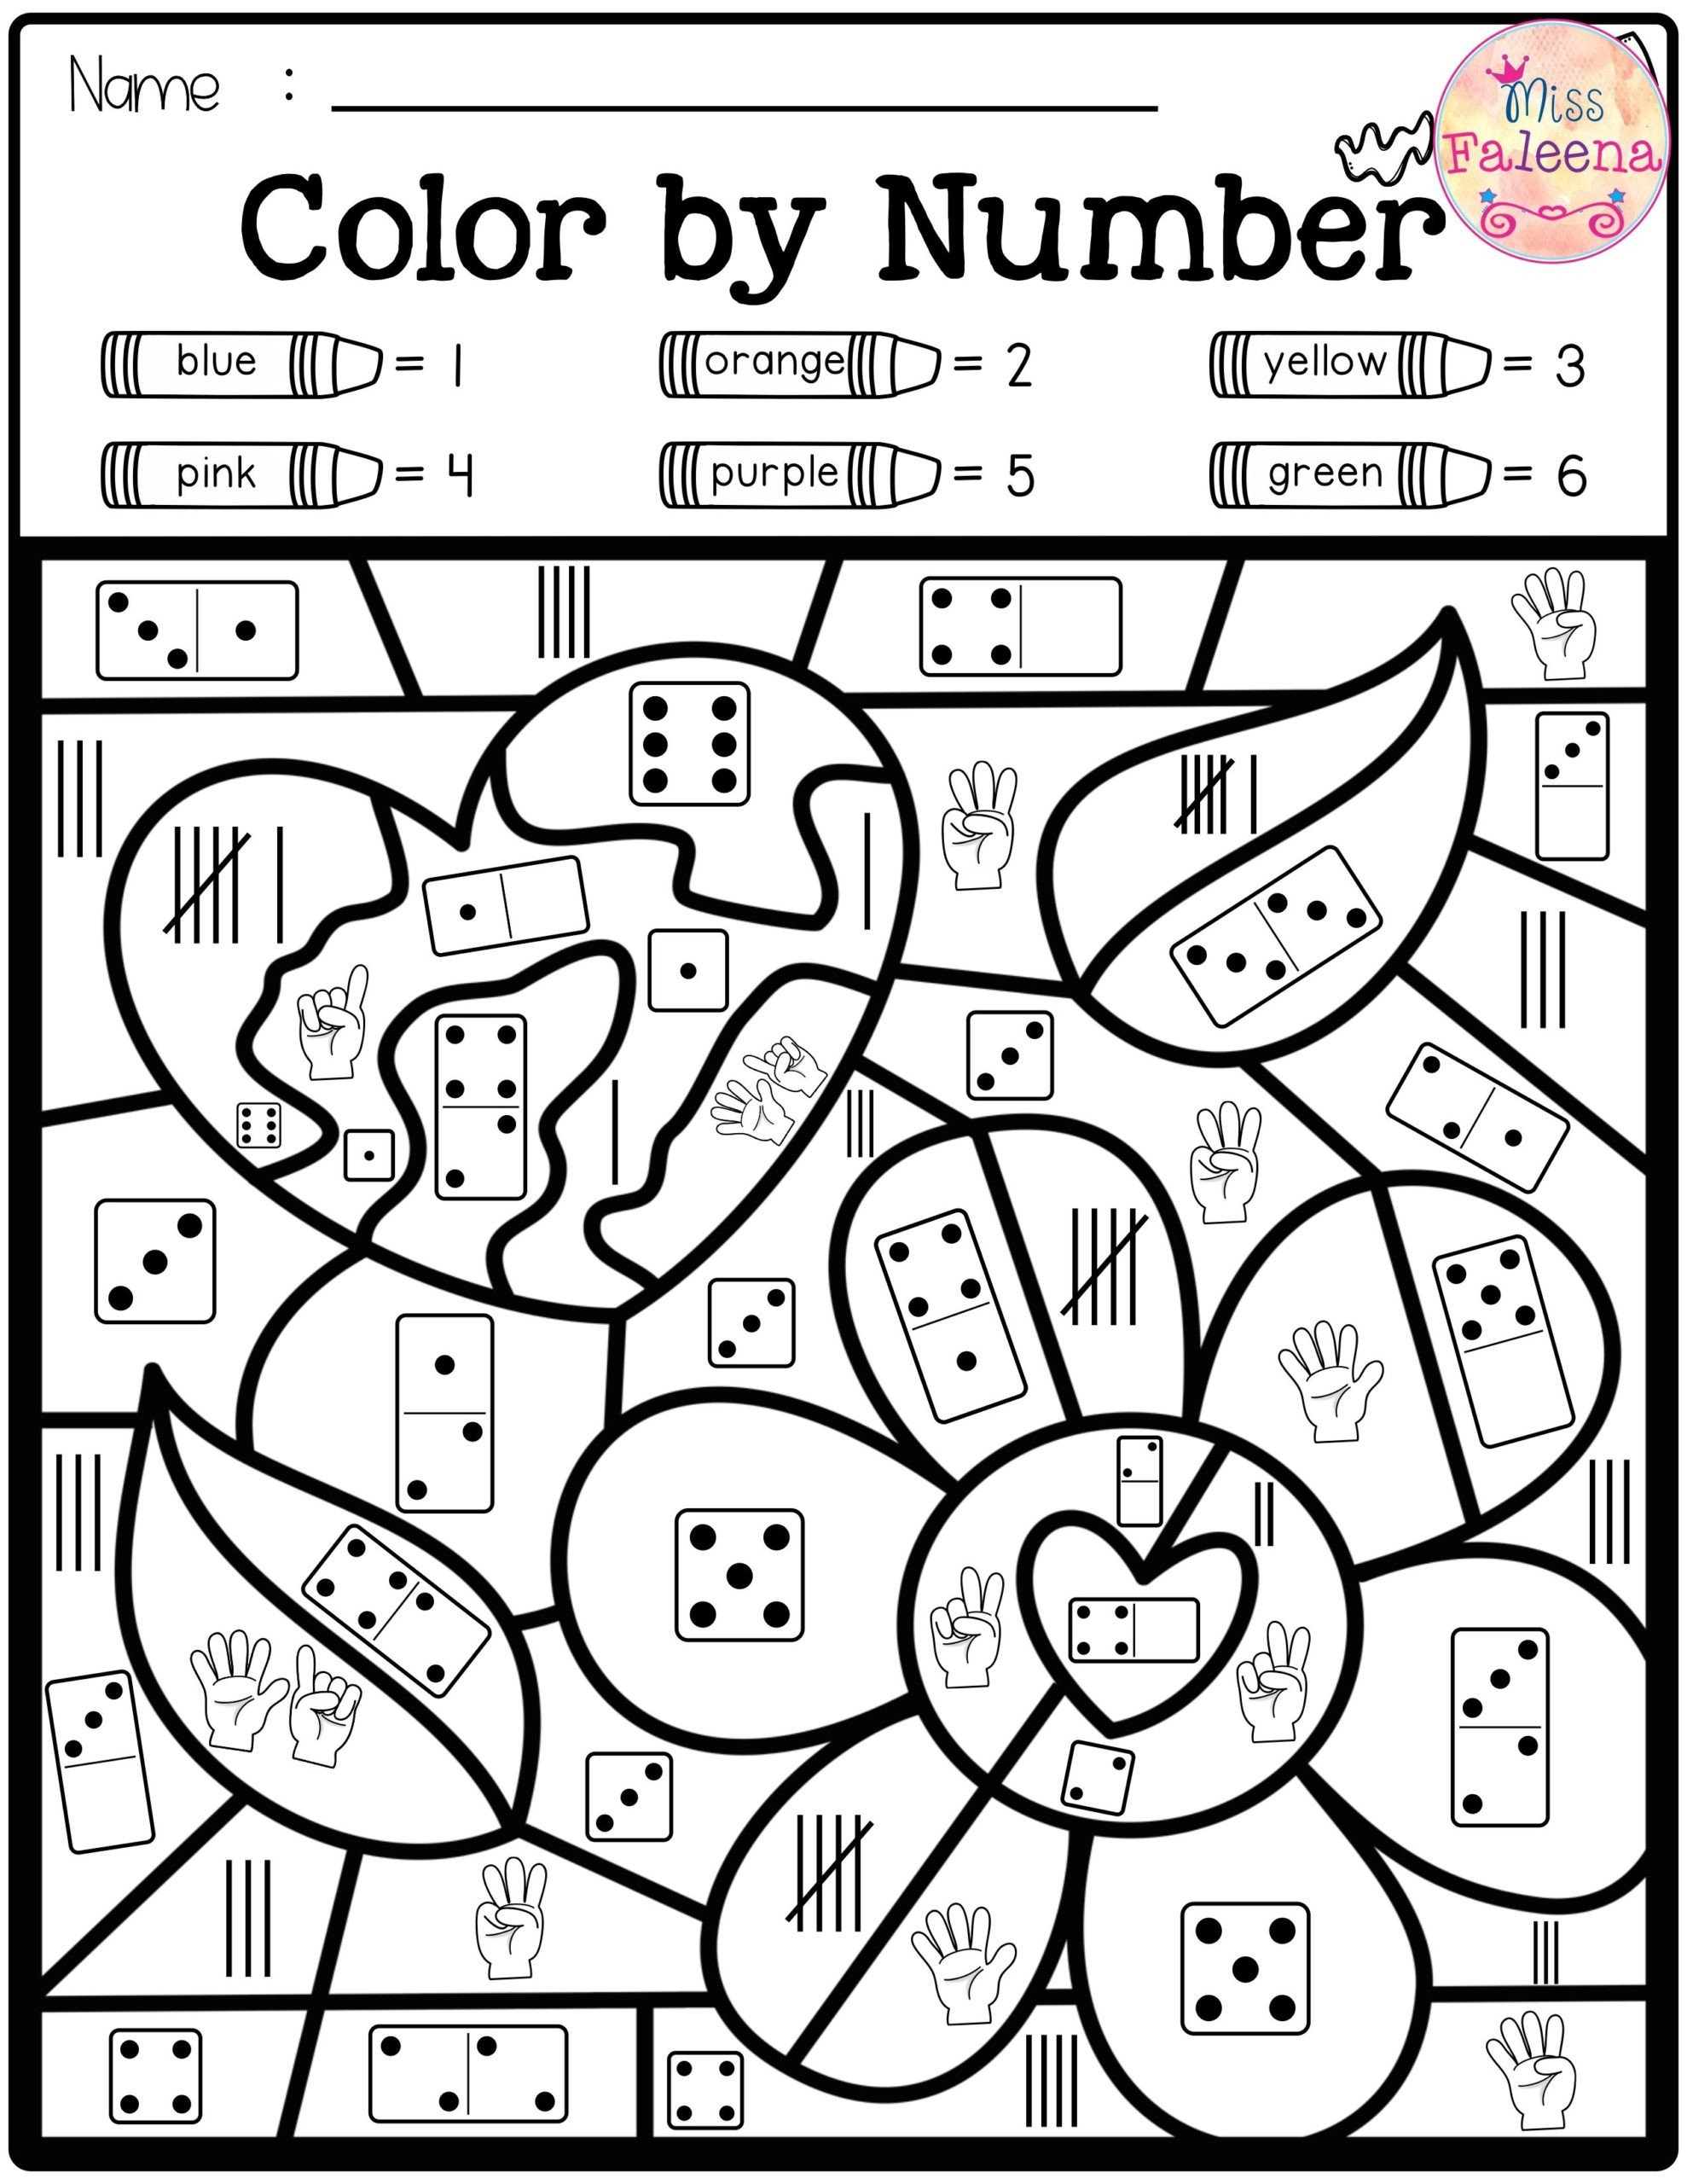 Color by Number Equations Worksheets Best Color by Number In Numbers Maths Worksheets for